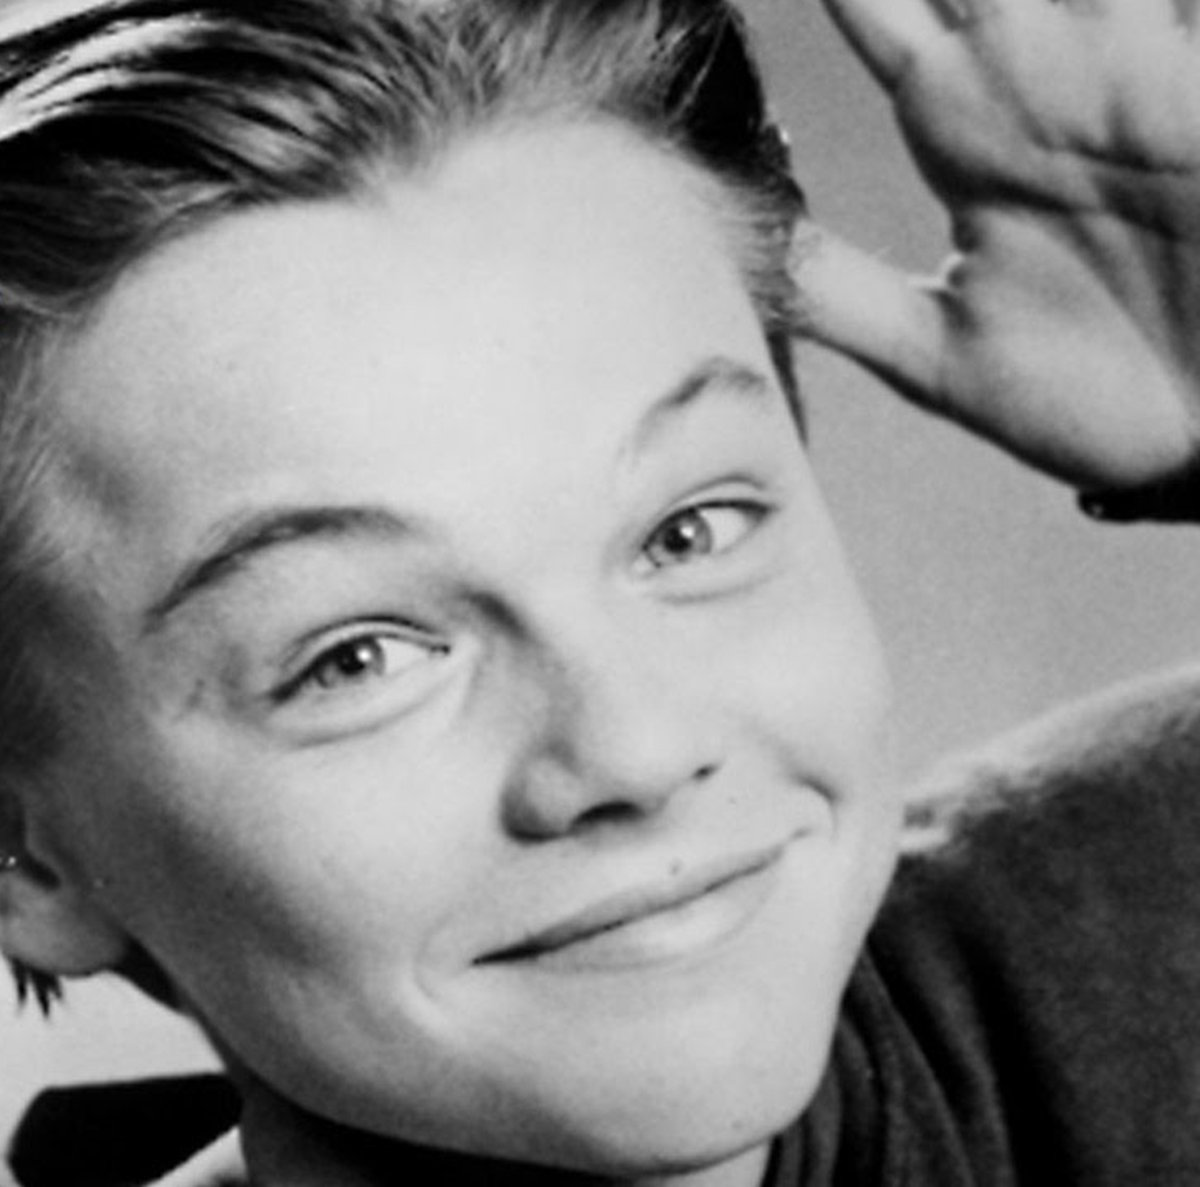 4 11 14 Things You May Not Have Realised About Leonardo DiCaprio